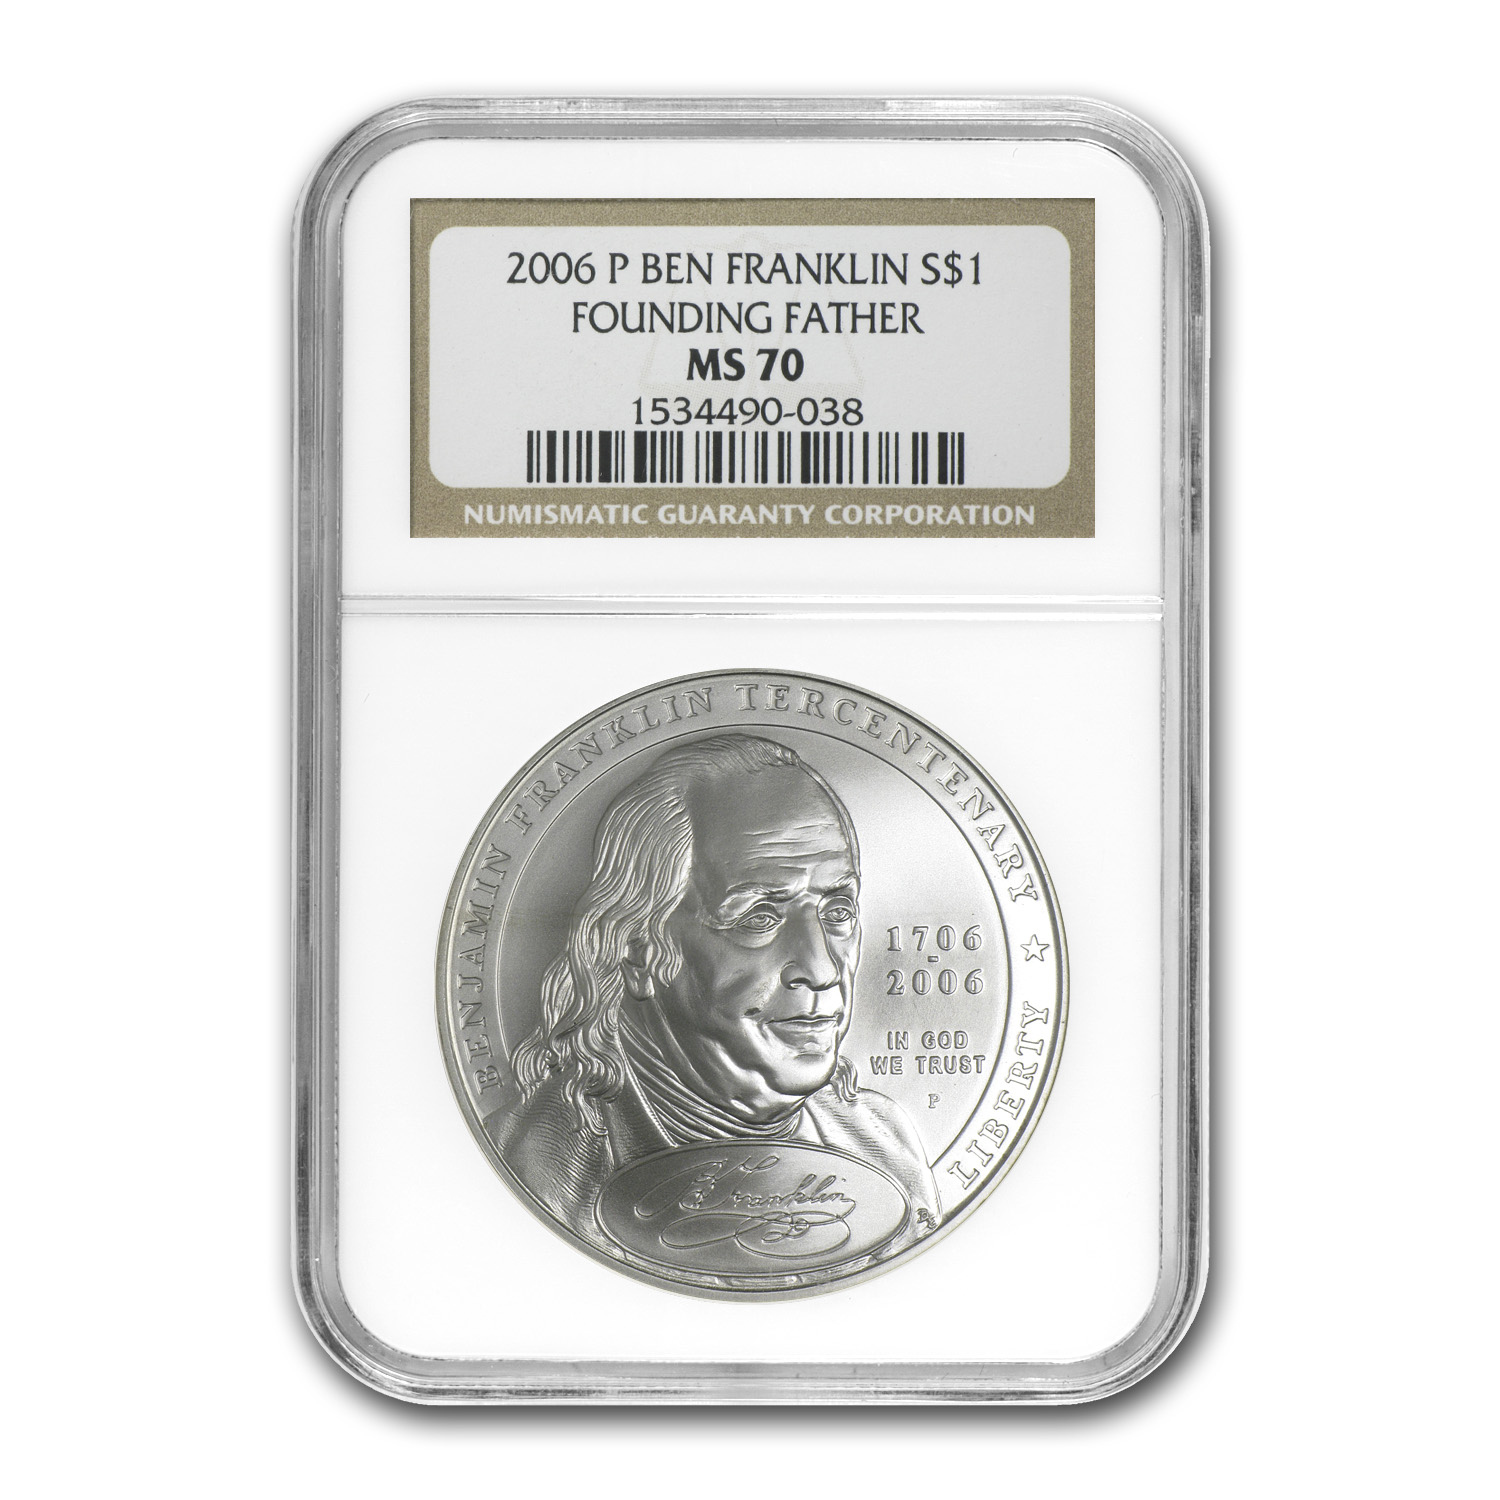 2006-P Ben Franklin Founding Father $1 Silver Commem MS-70 NGC